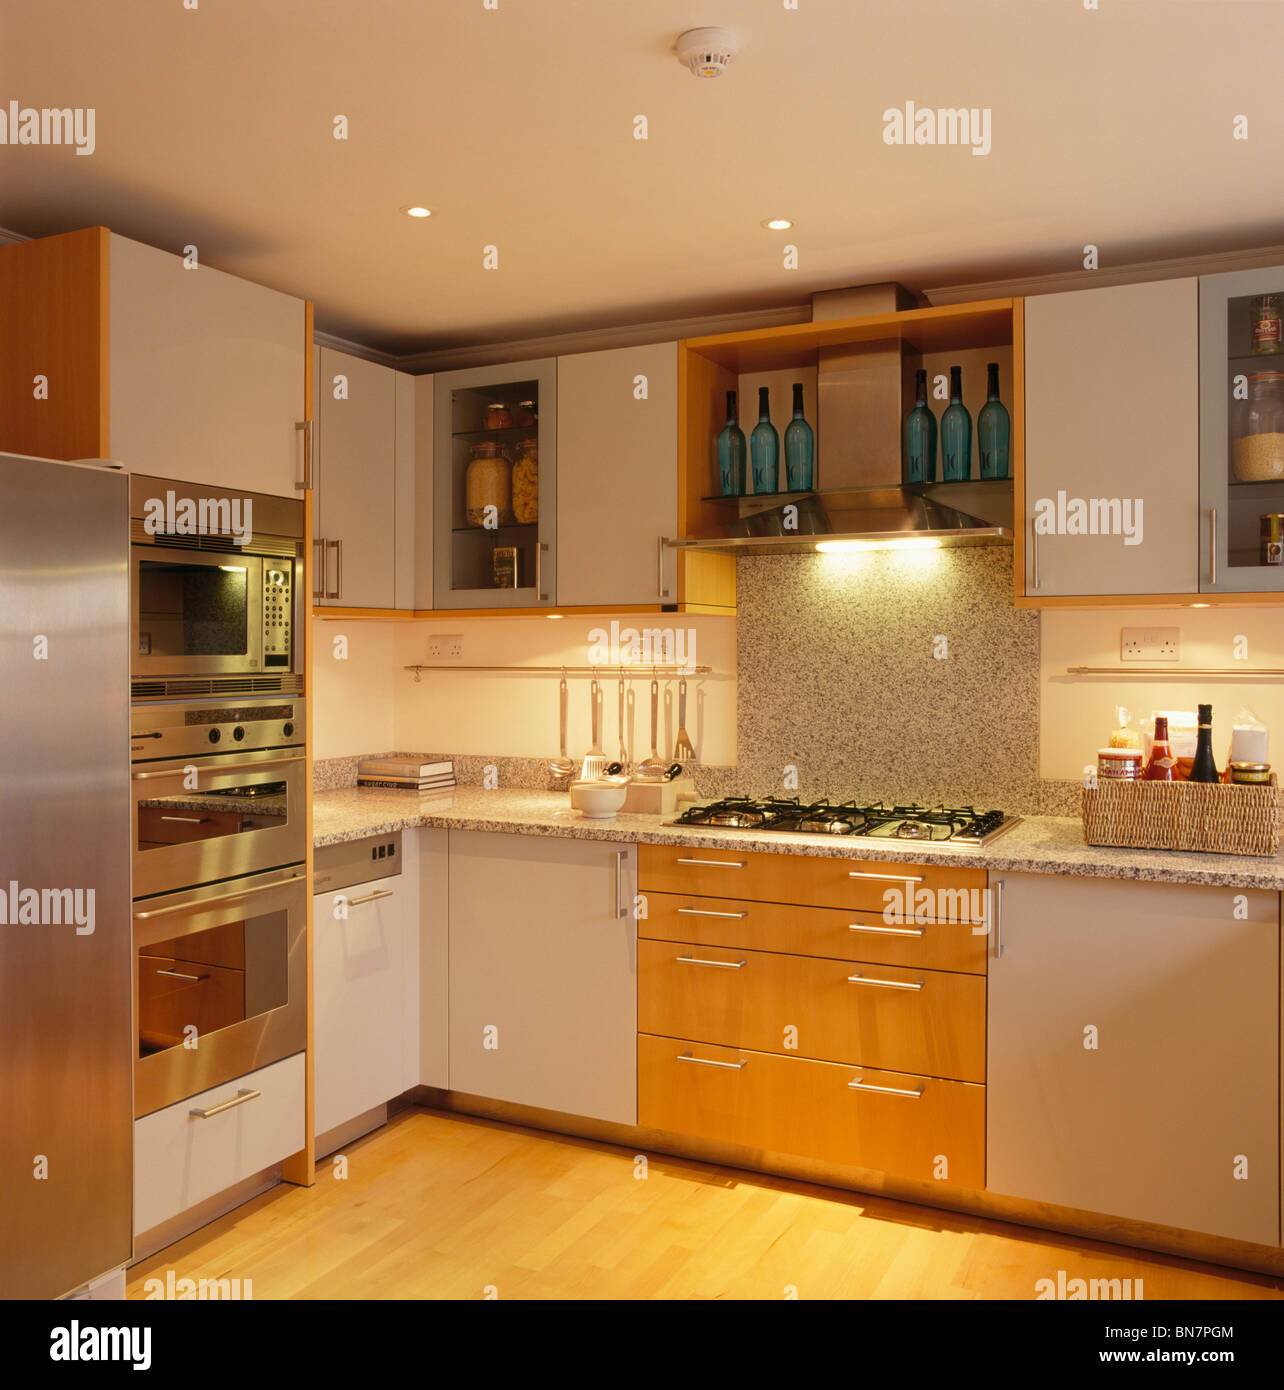 Recessed Lighting Below Fitted Wall Cupboards In Modern White Kitchen With  Baulthaup Oven And With Granite Splash Back Above Hob